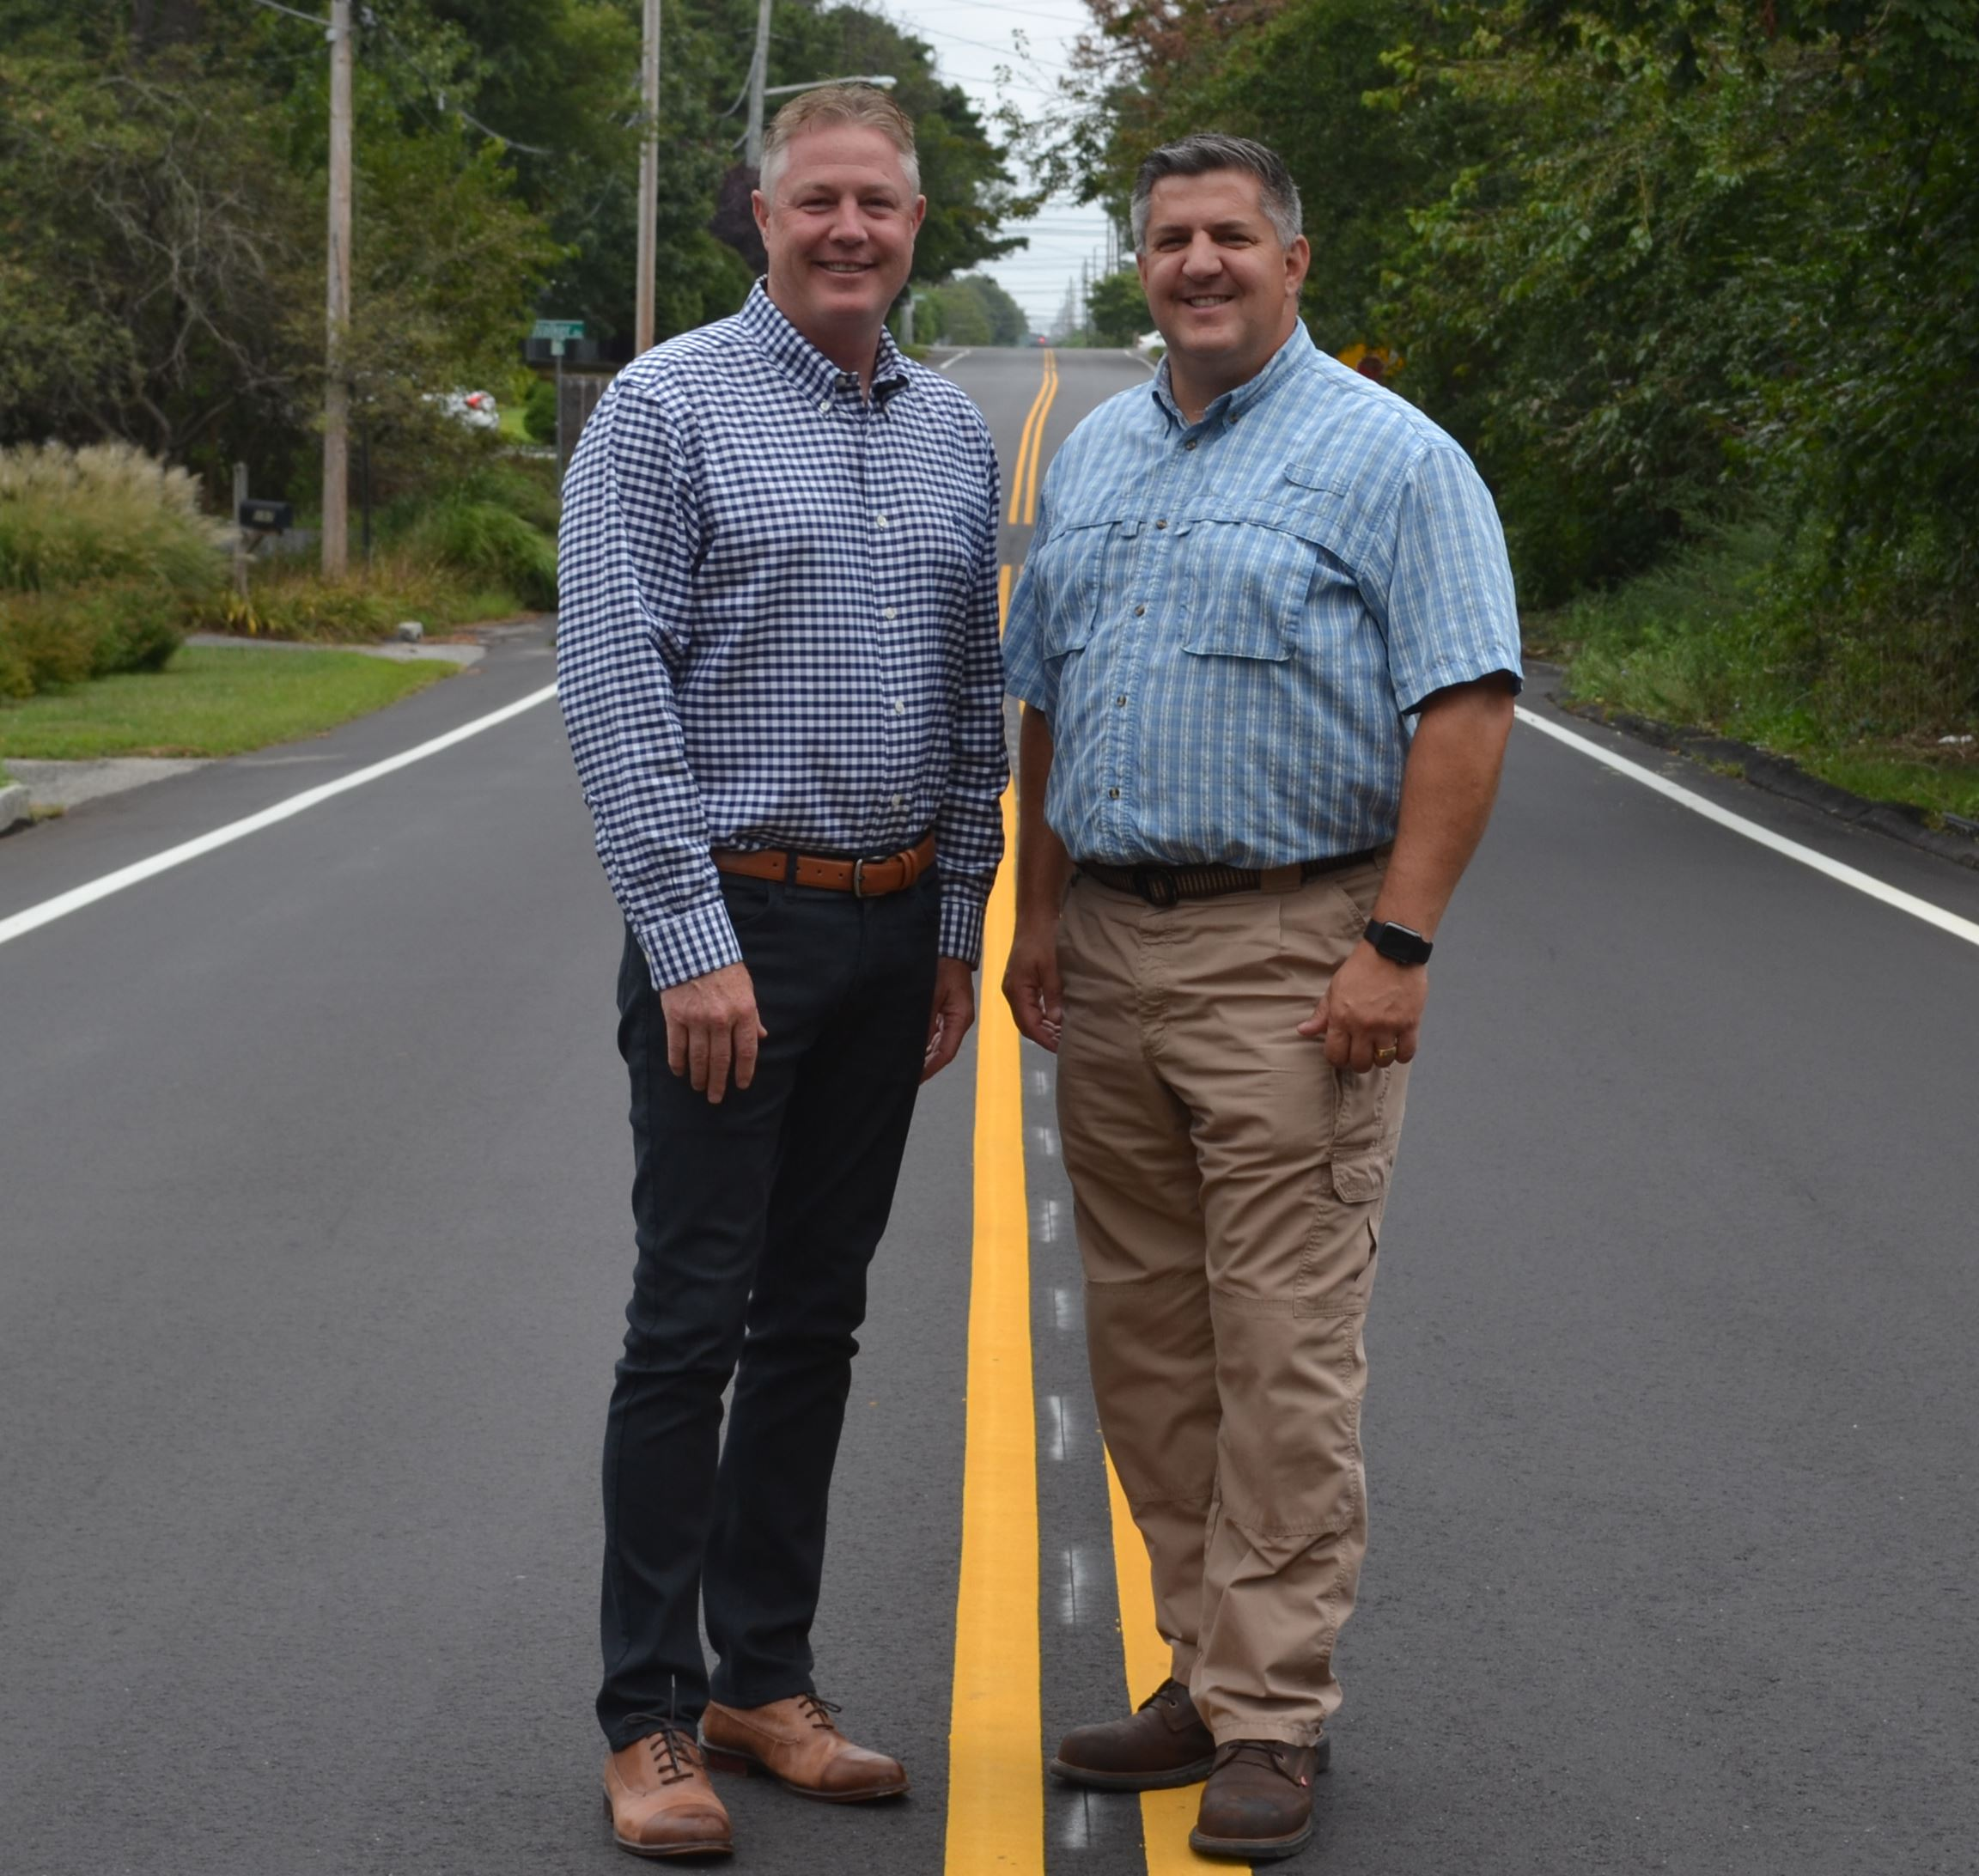 Superintendent Losquadro and Councilman Foley Standing on Newly Paved Road